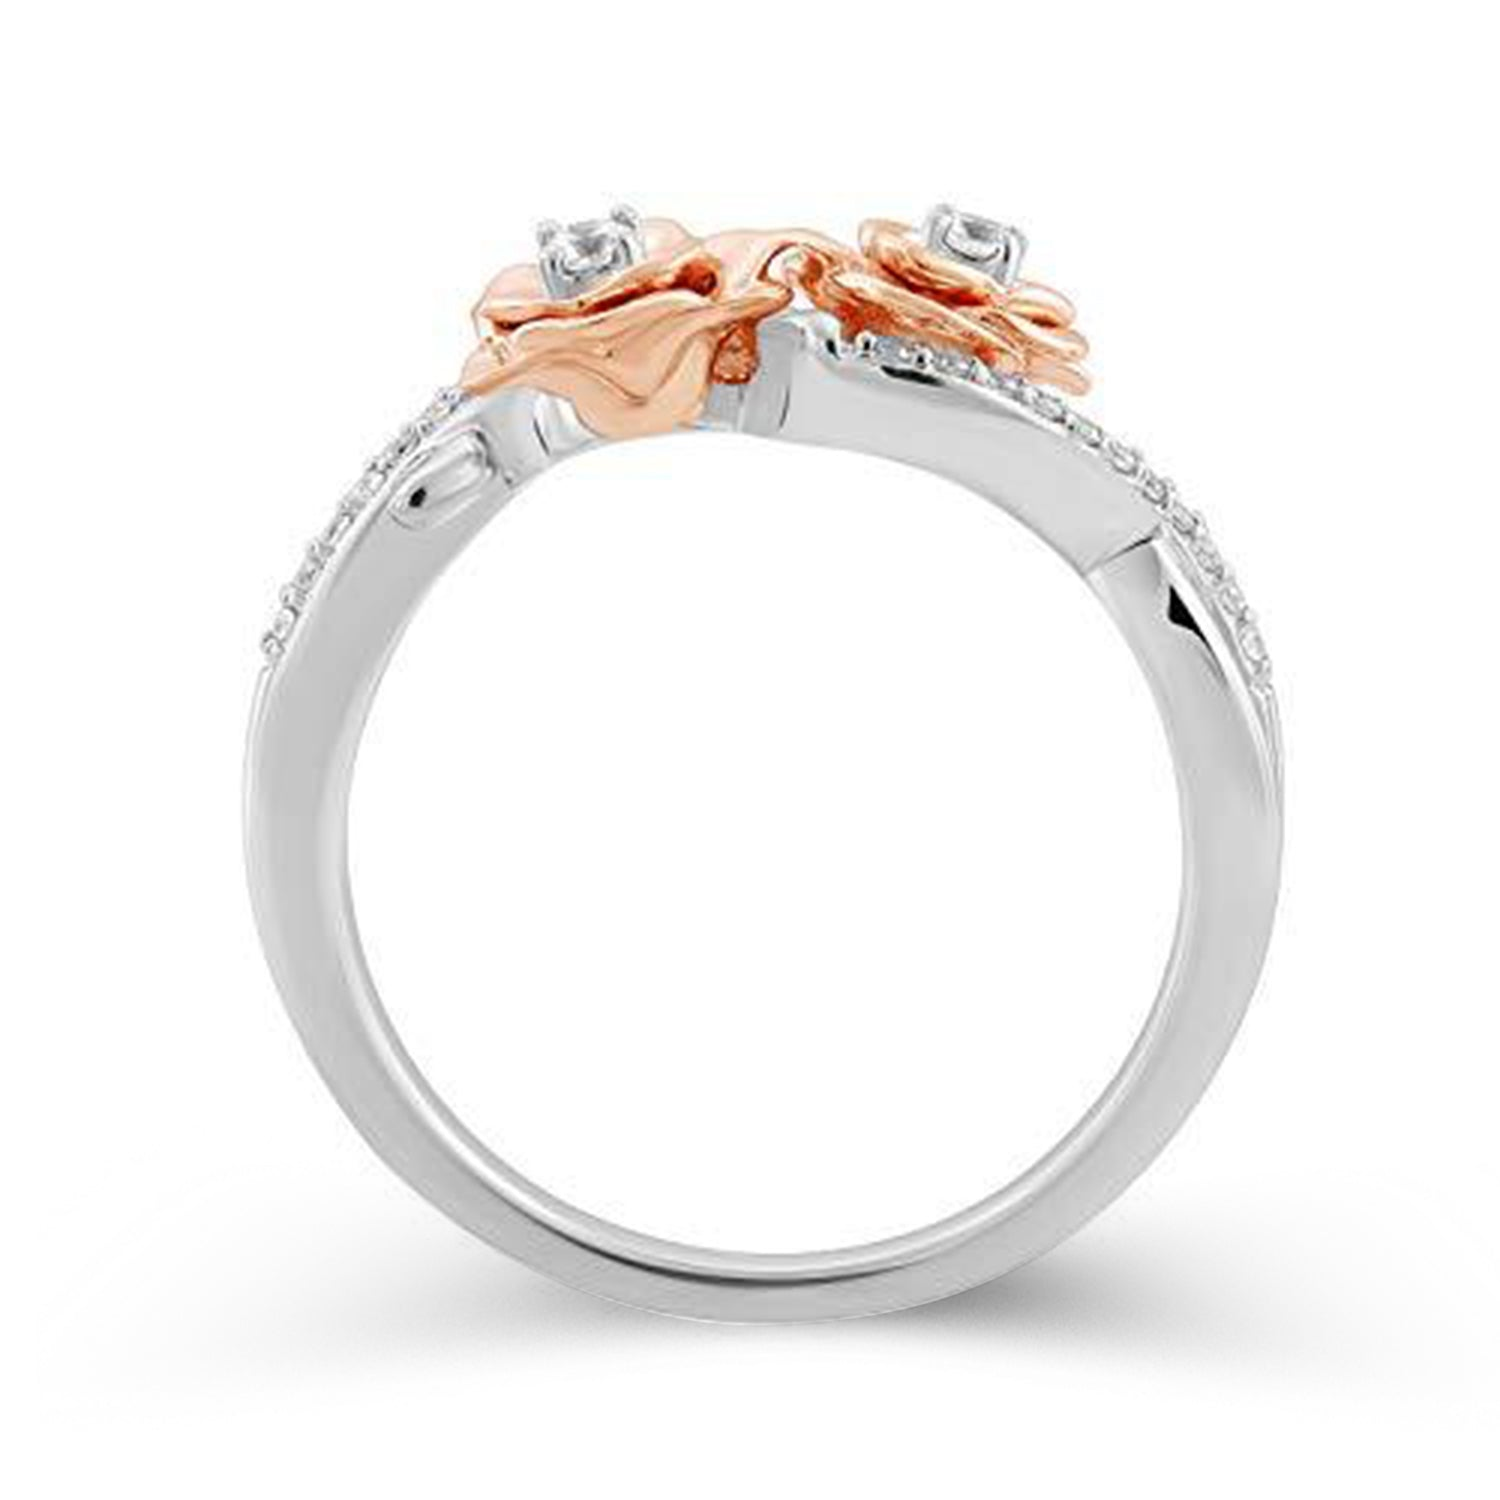 enchanted_disney-belle_rose_fashion_ring-rose_gold_plated_silver_1/6CTTW_3